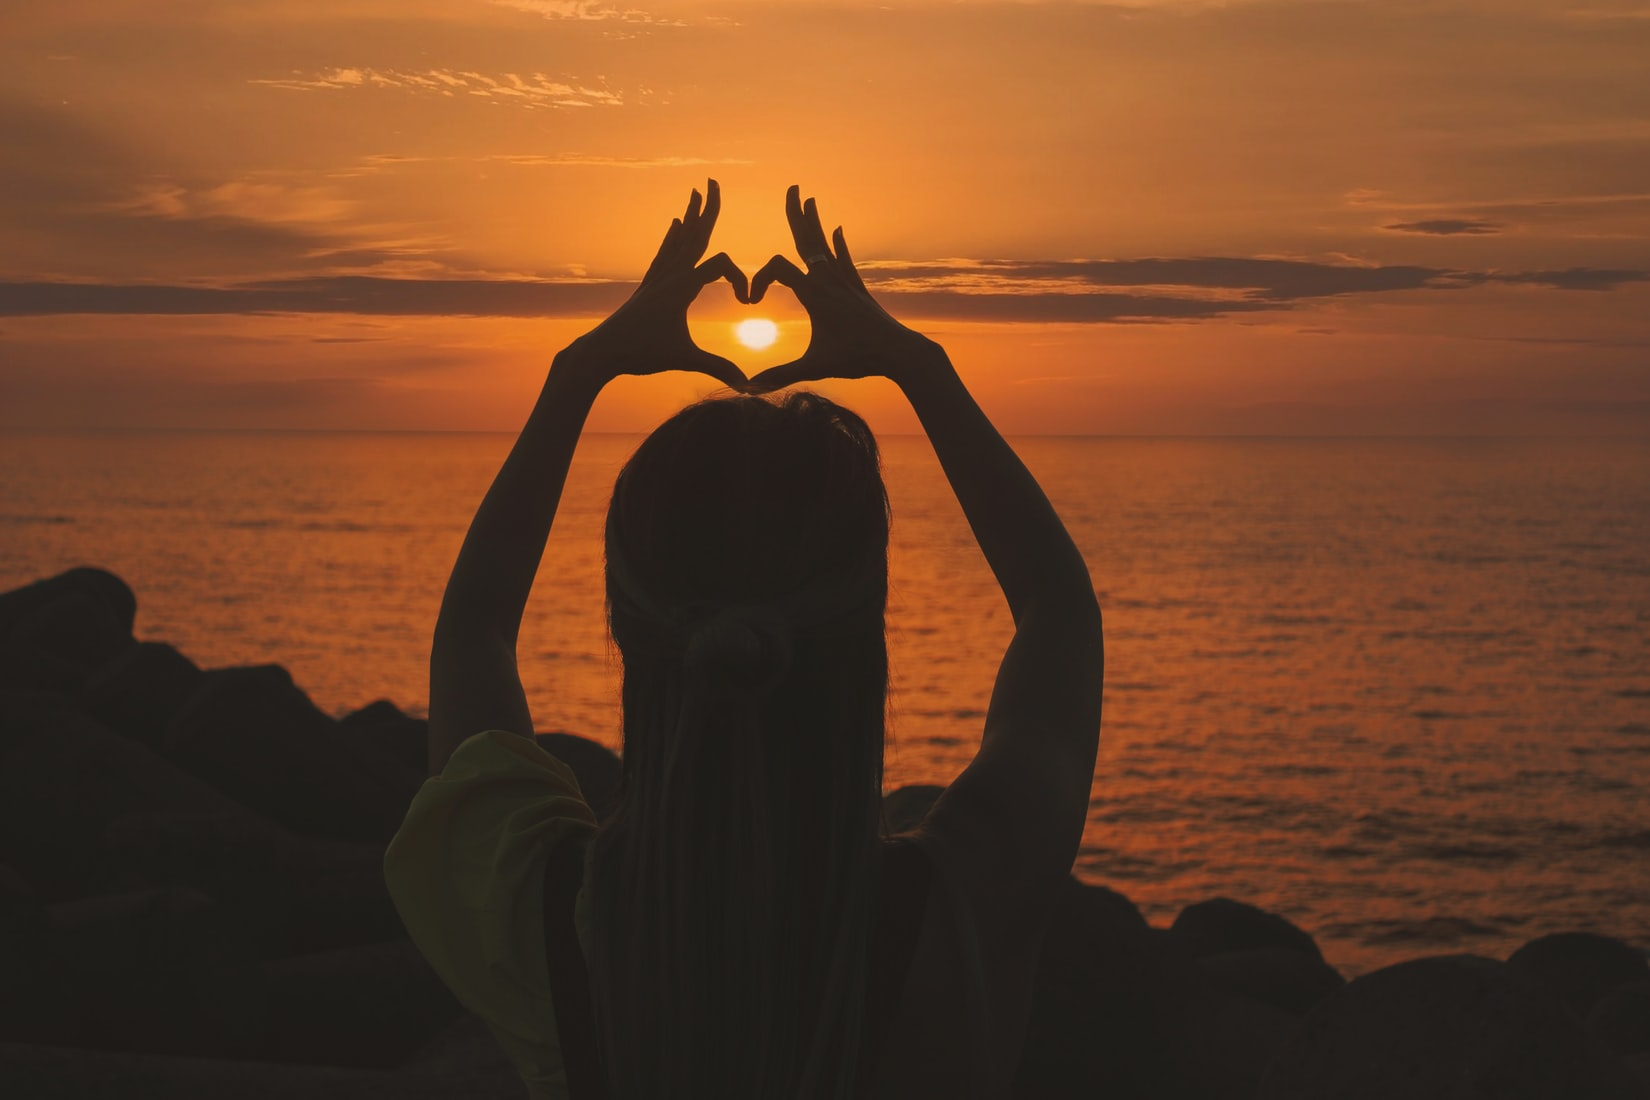 Silhouette of woman doing heart sign during sunset in front of body of water